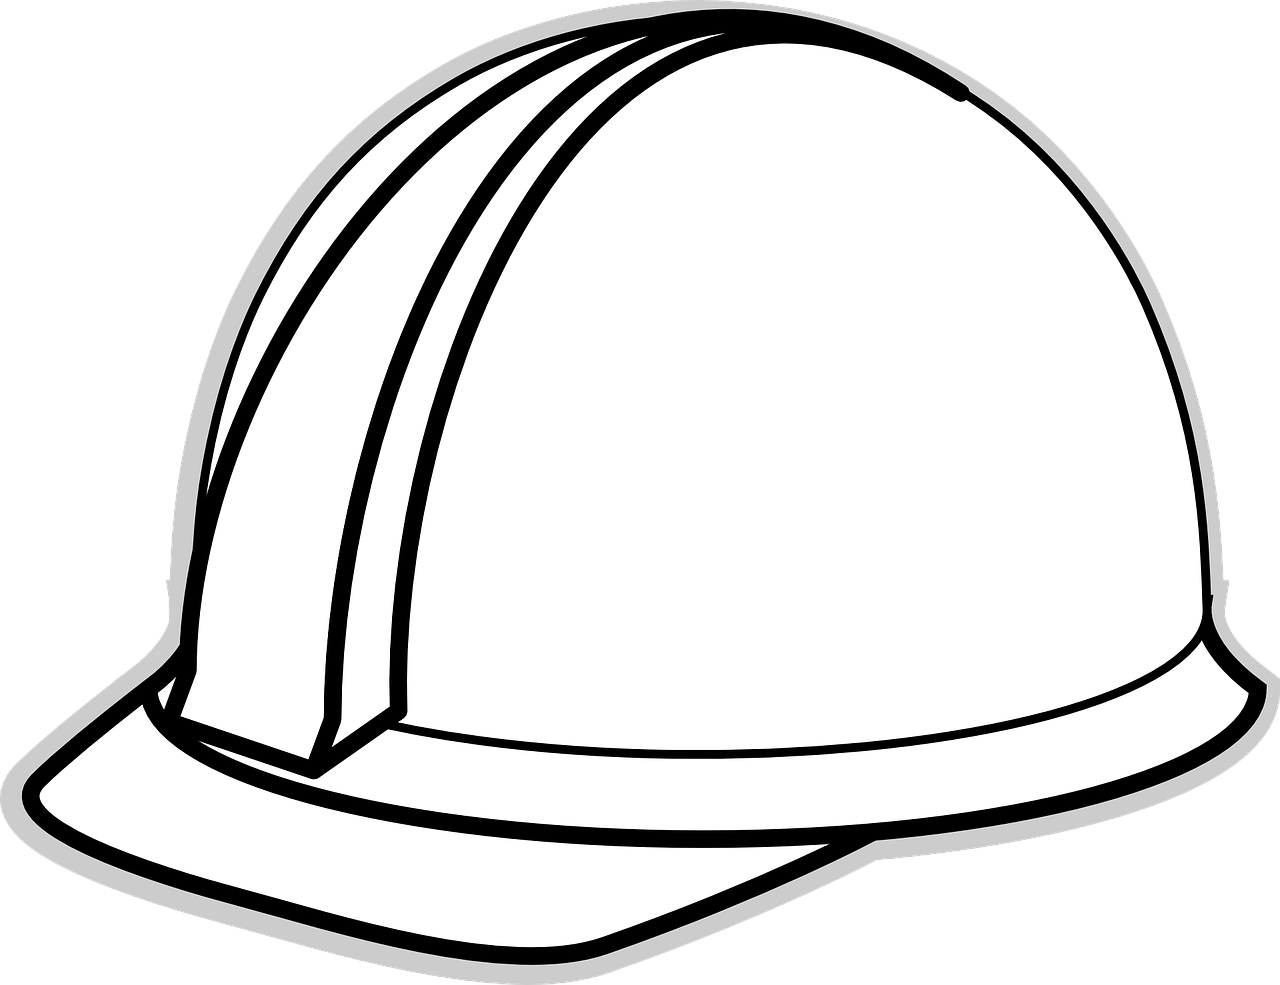 safety-helmet-296519_1280.png